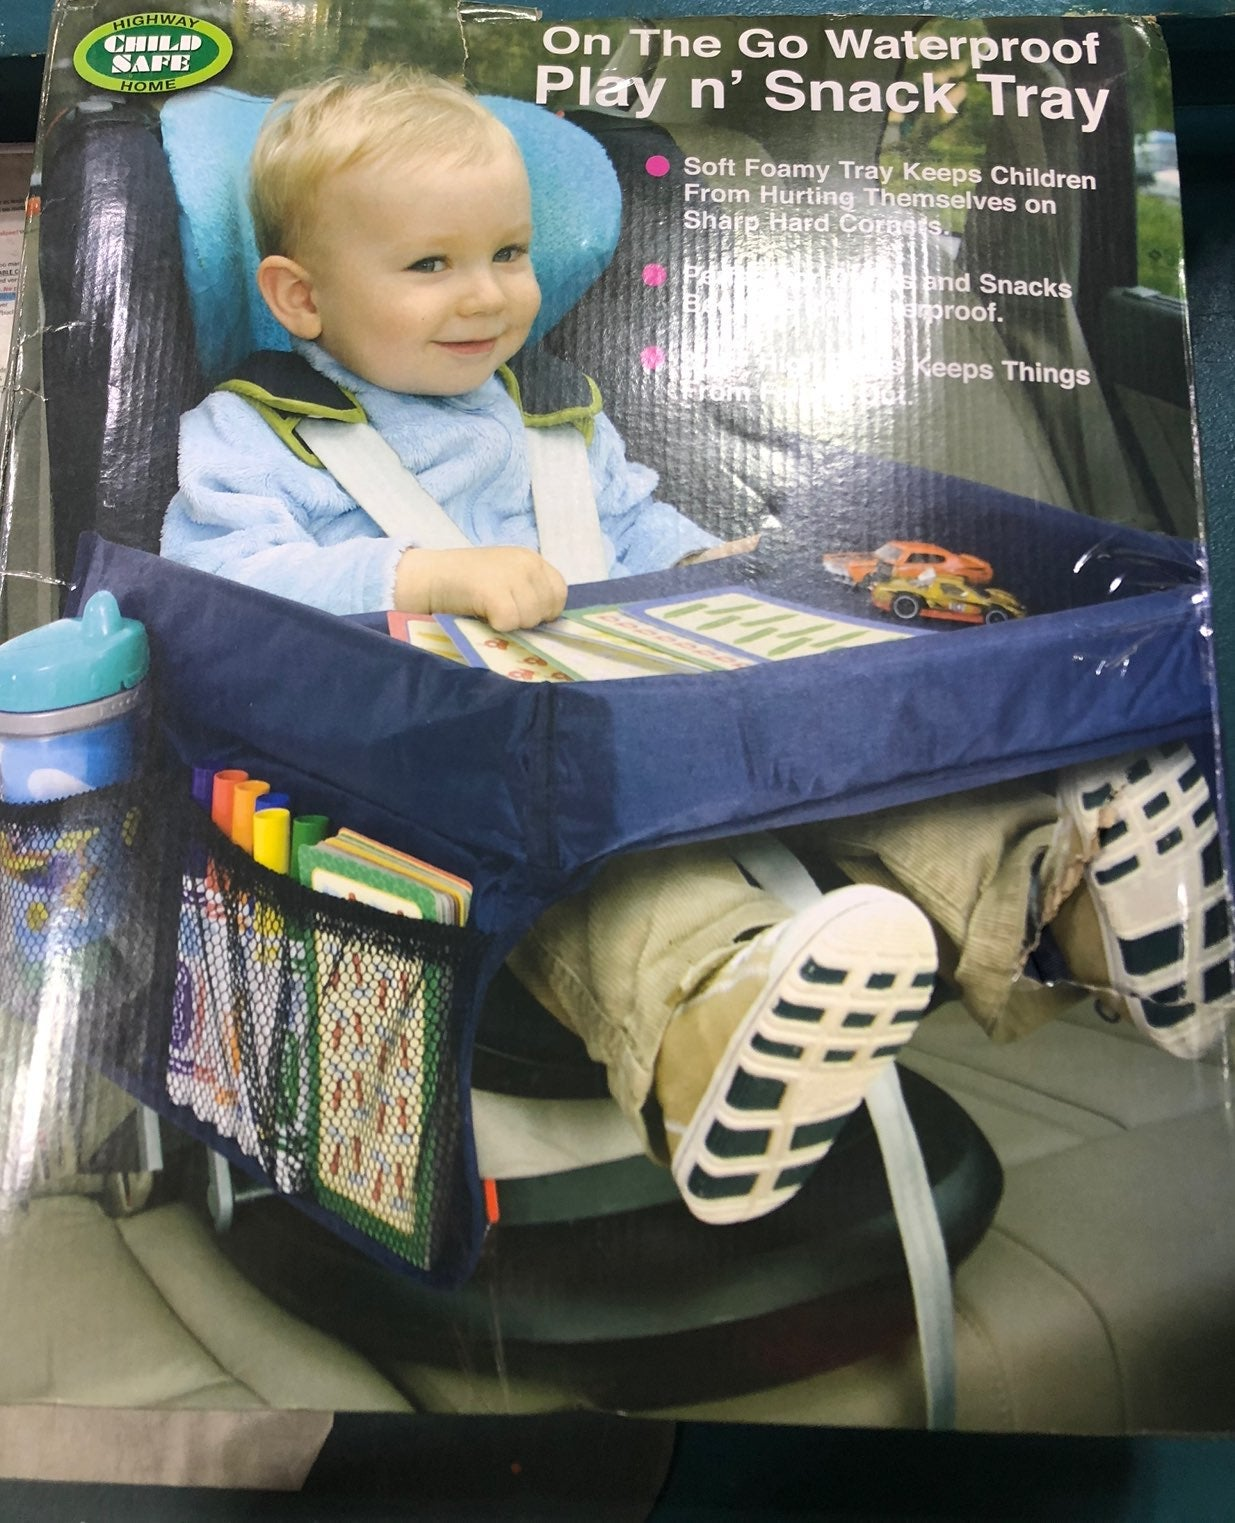 On the go waterproof play n snack tray